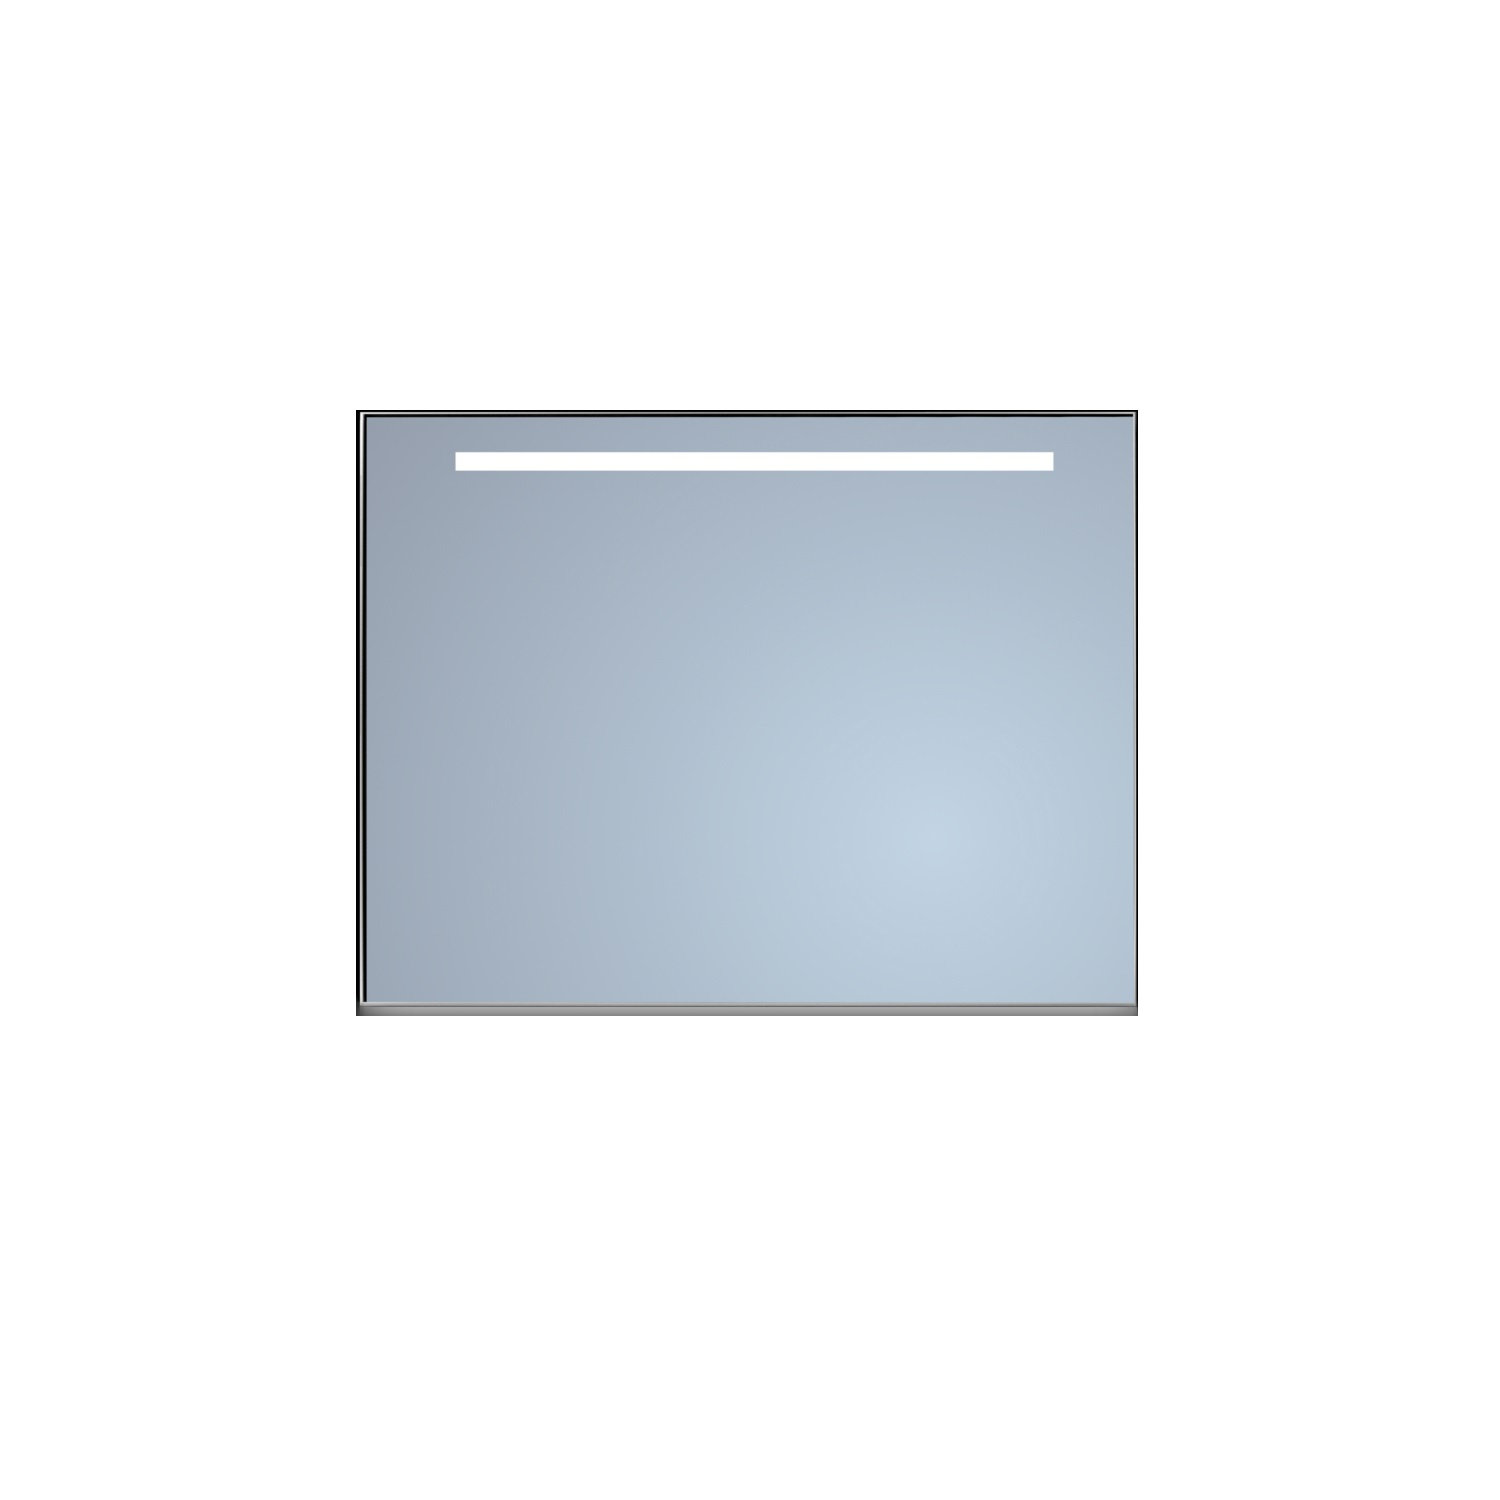 Badkamerspiegel Sanicare Q-Mirrors Ambiance en 'Cold White' LED-verlichting 70x60x3,5 Alu Omlijsting